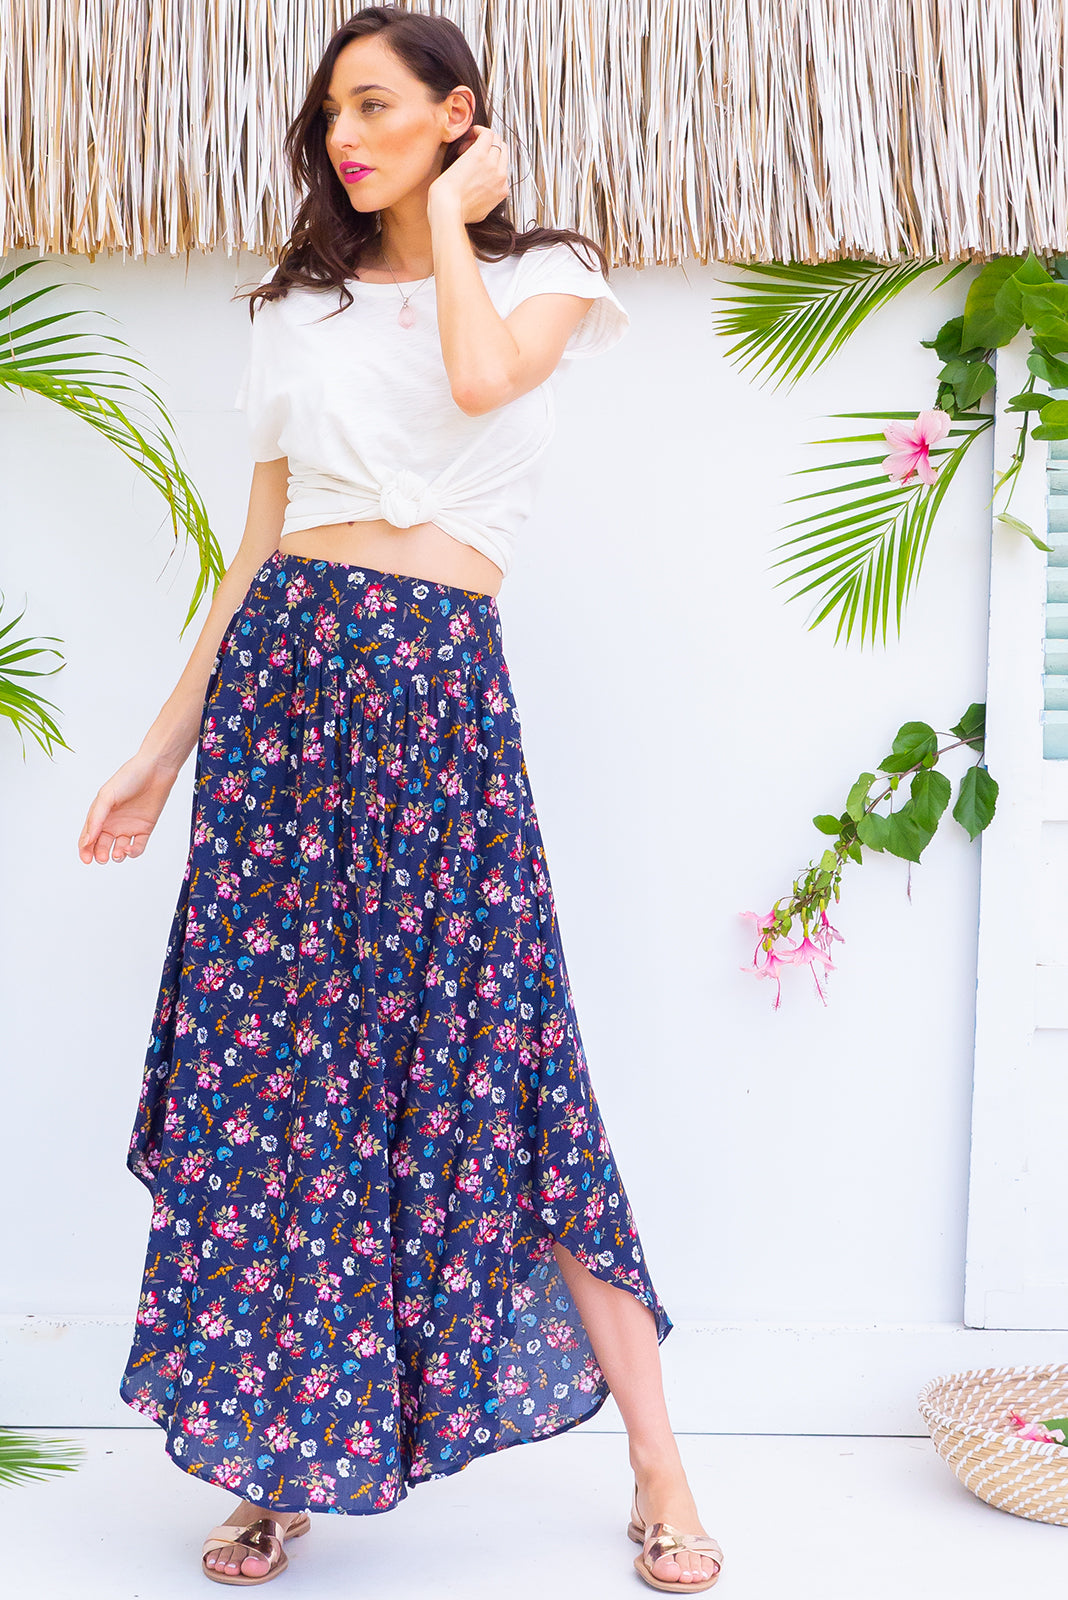 Sails Nova Navy Maxi Skirt with a soft ruched elastic back and pockets in a gorgeous bright navy intricate floral print on rayon fabric